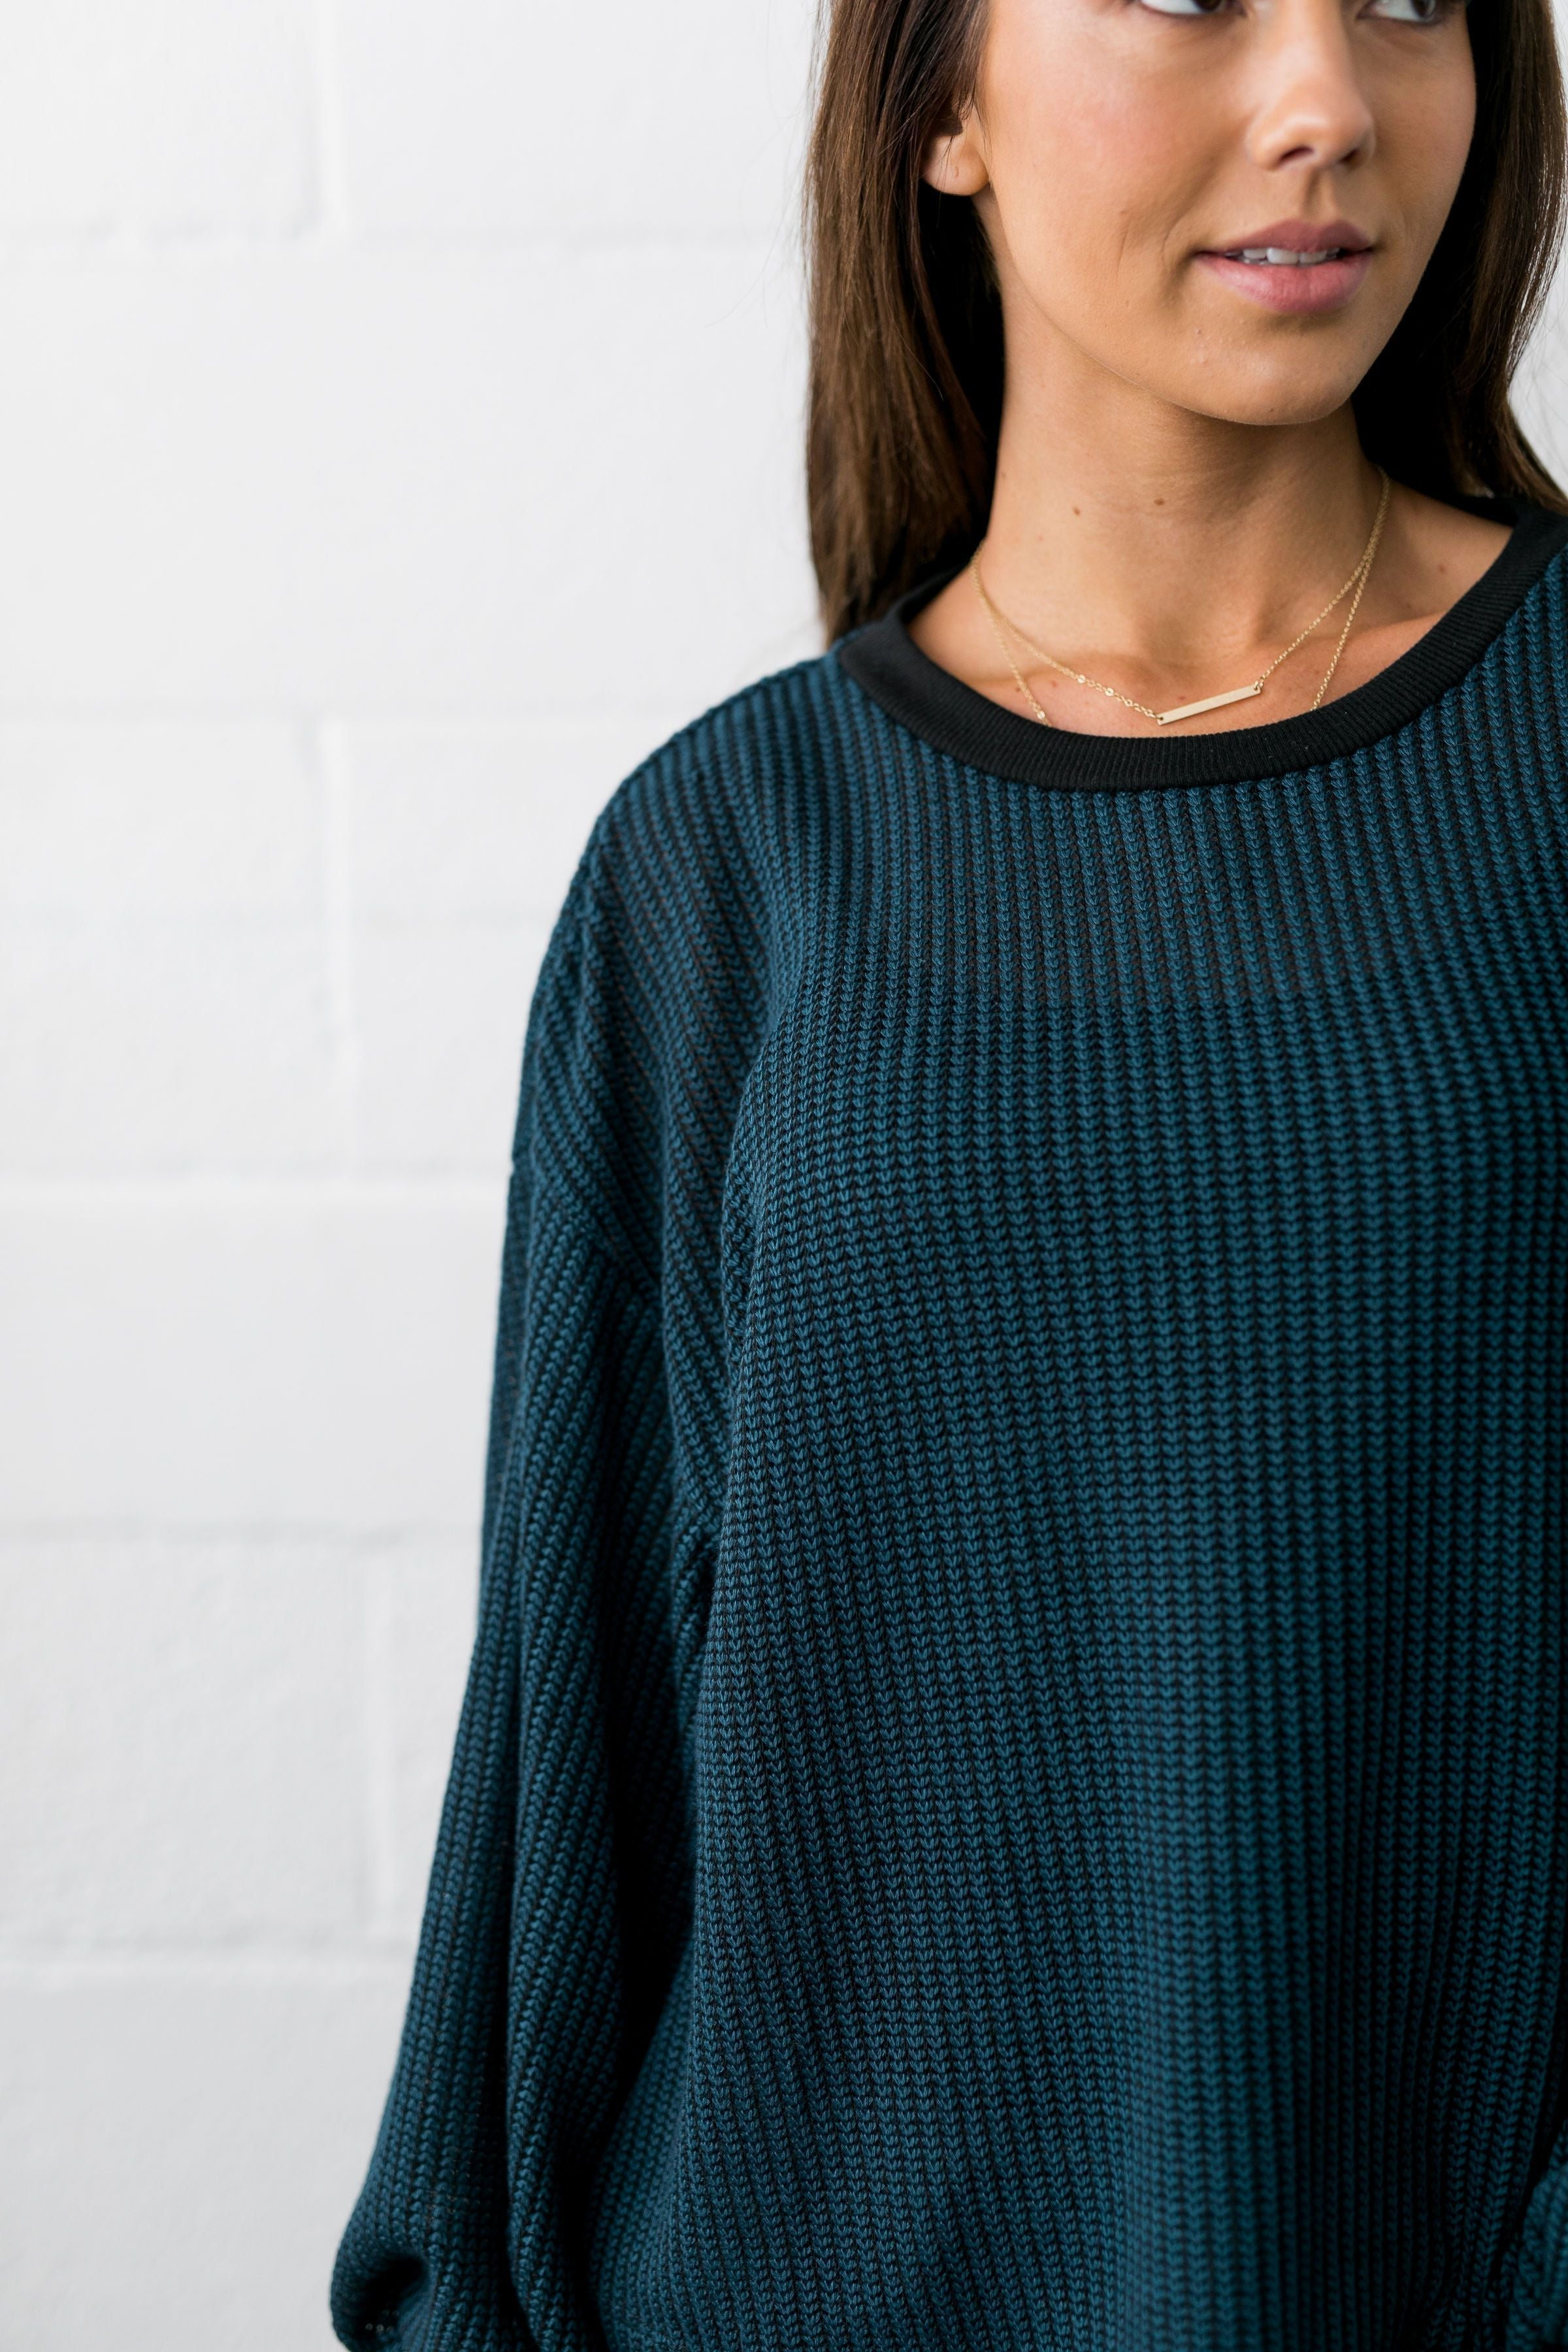 Crocheted Balloon Sleeve Sweater In Teal - ALL SALES FINAL